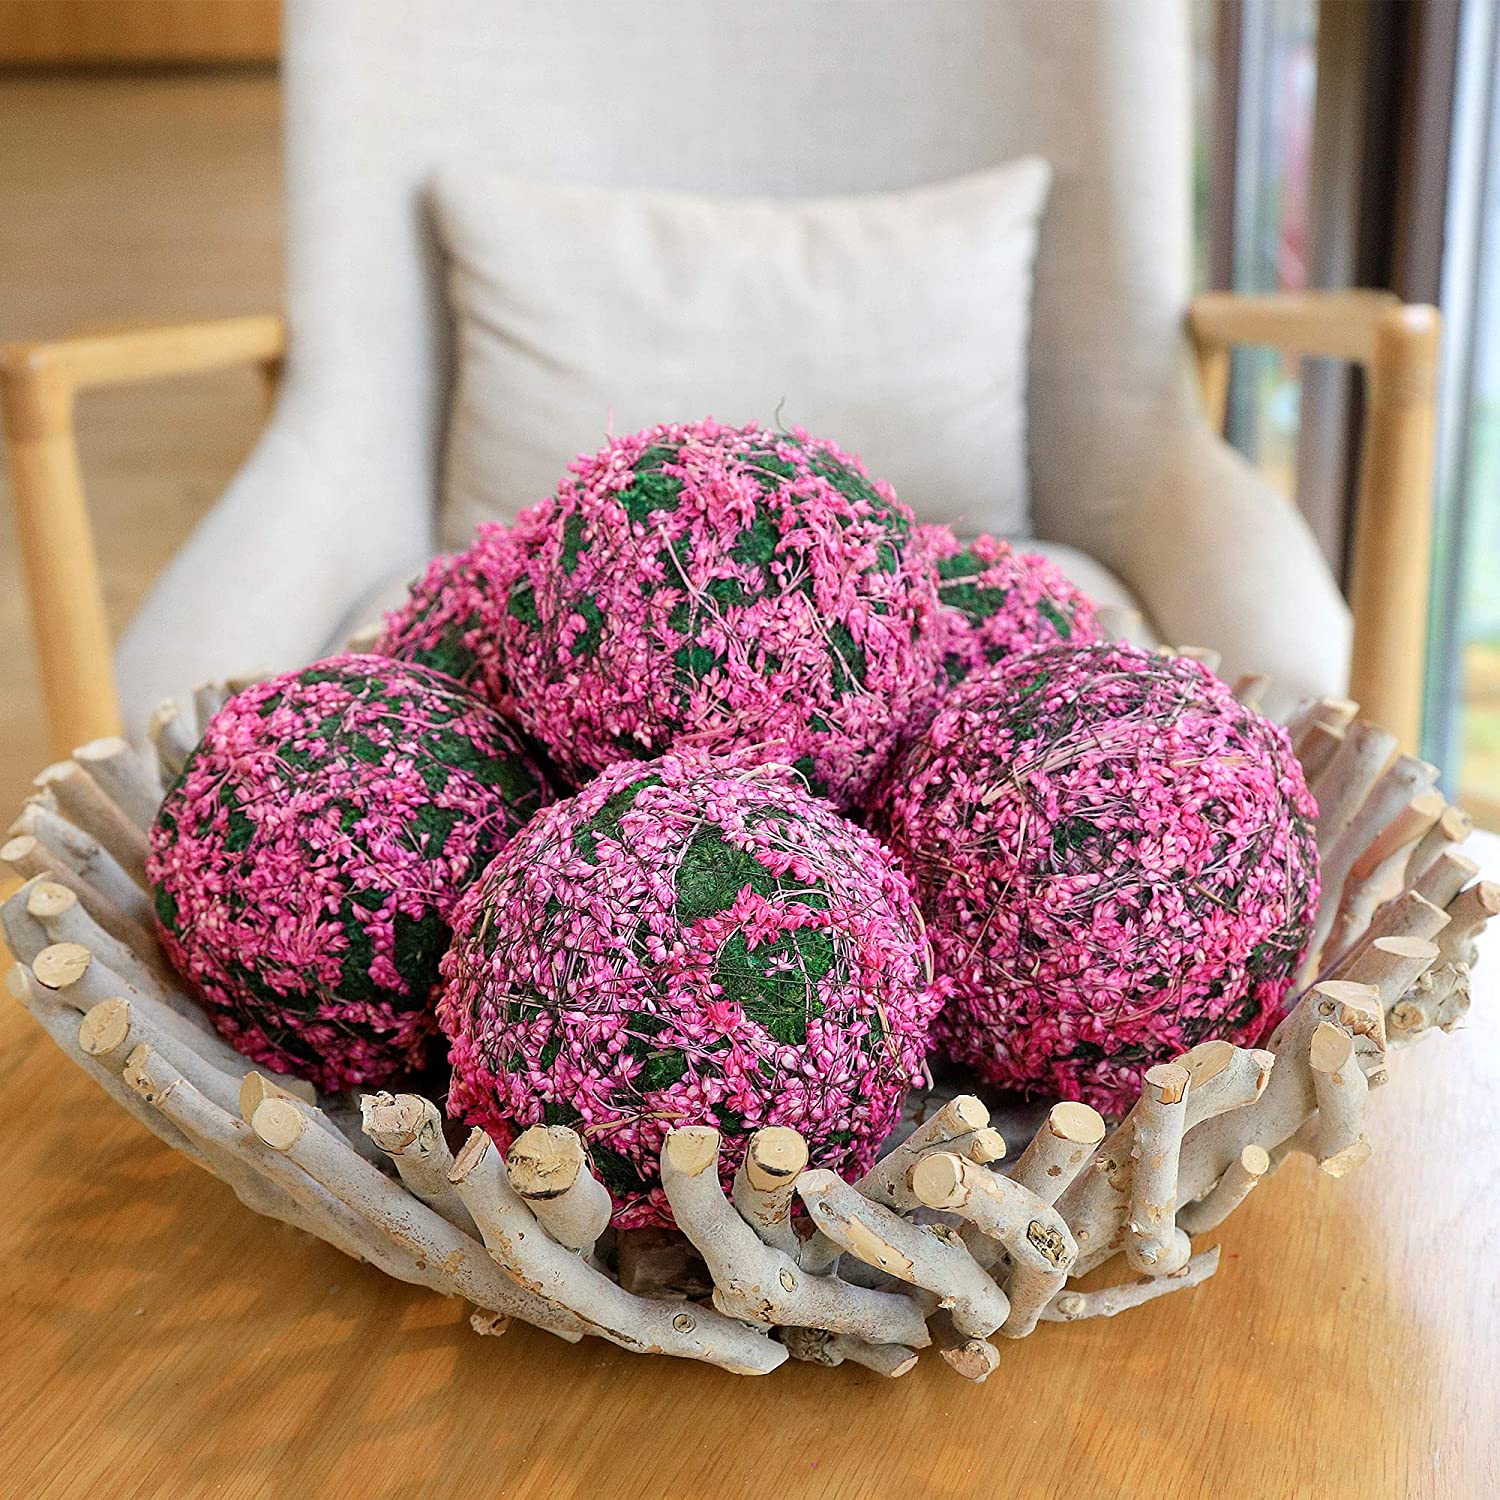 Qingbei Rina Dried Flower and Preserved Grass Decorative Ball Bowl Vase Basket Filler for Home Garden Decoration Pink, Diameter of 3.15 Inches, 6 Packs